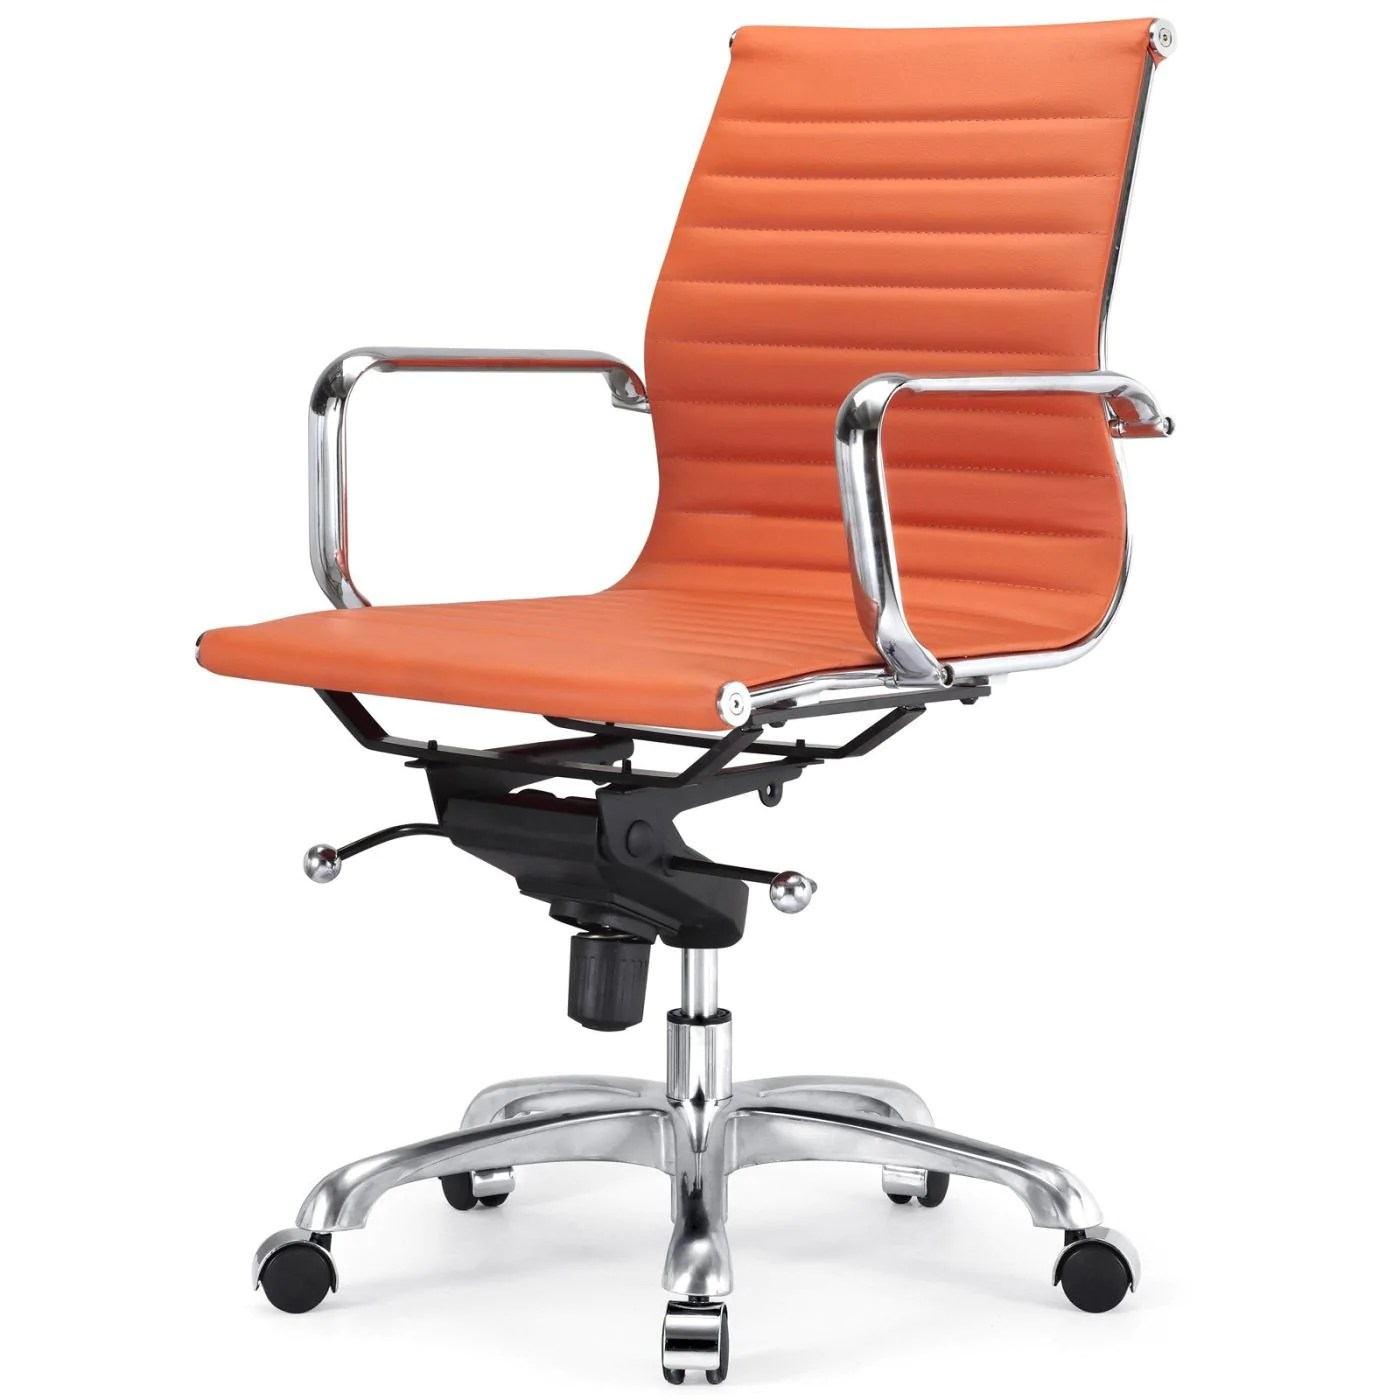 Orange Office Chairs Buy Meelano 344 Orn Modern Office Chair In Orange At Contemporary Furniture Warehouse